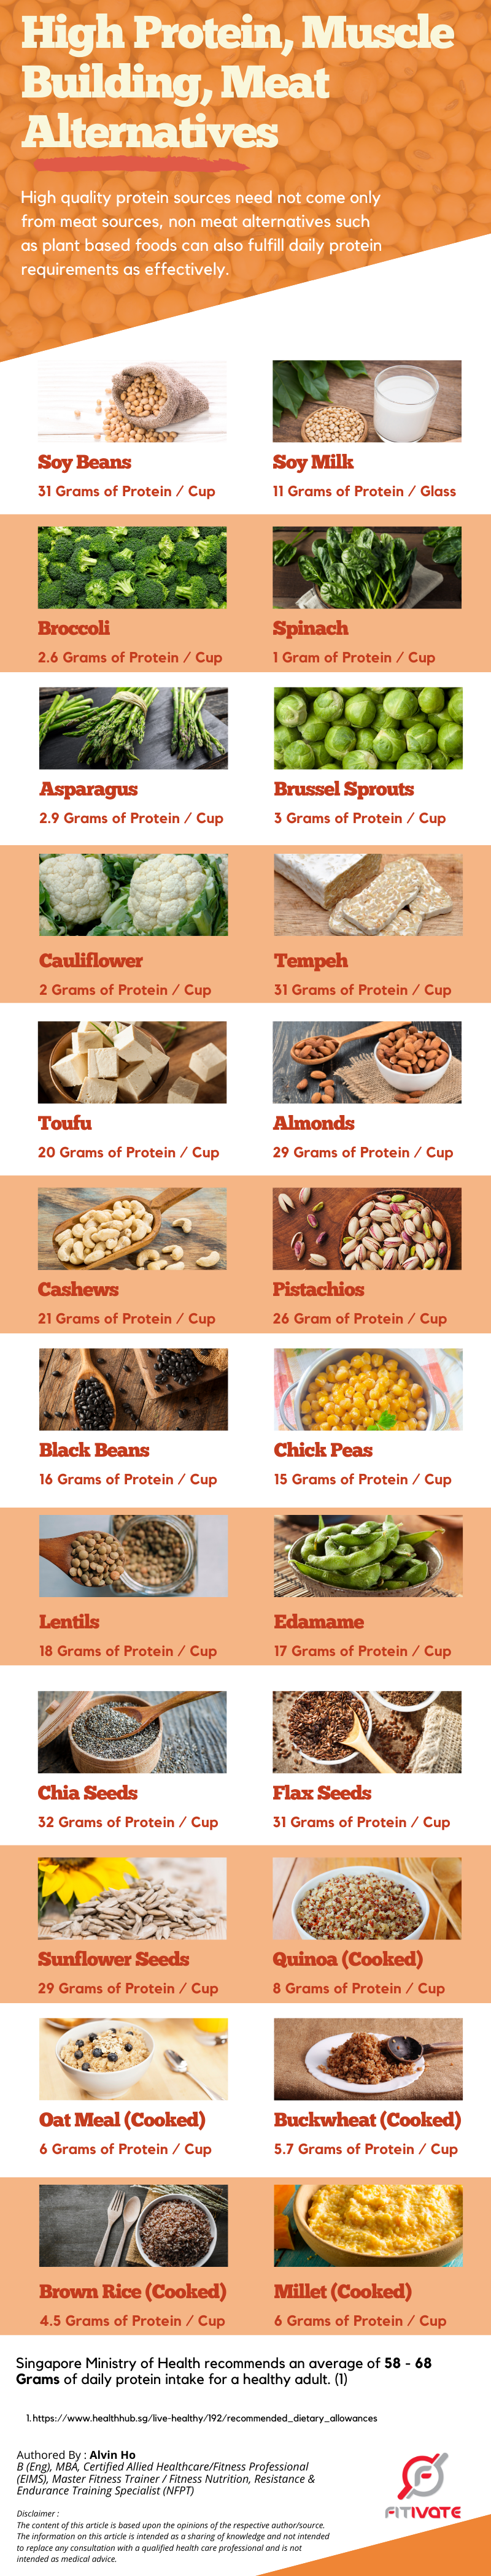 Meat Alternatives, high protein vegetables